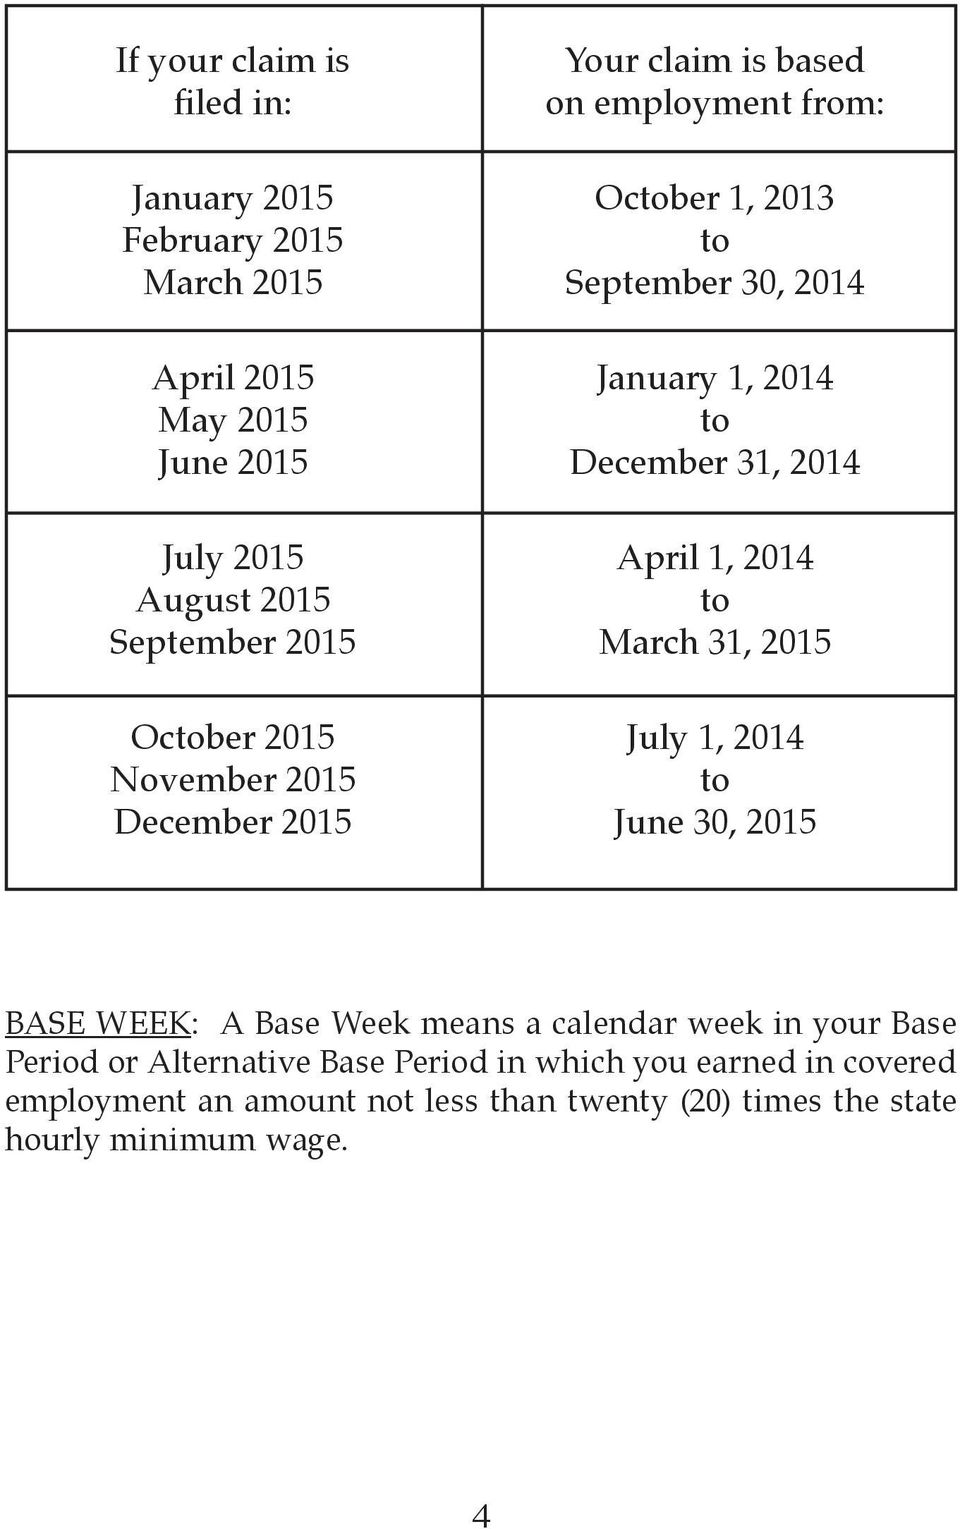 2015 October 2015 July 1, 2014 November 2015 to December 2015 June 30, 2015 BASE WEEK: A Base Week means a calendar week in your Base